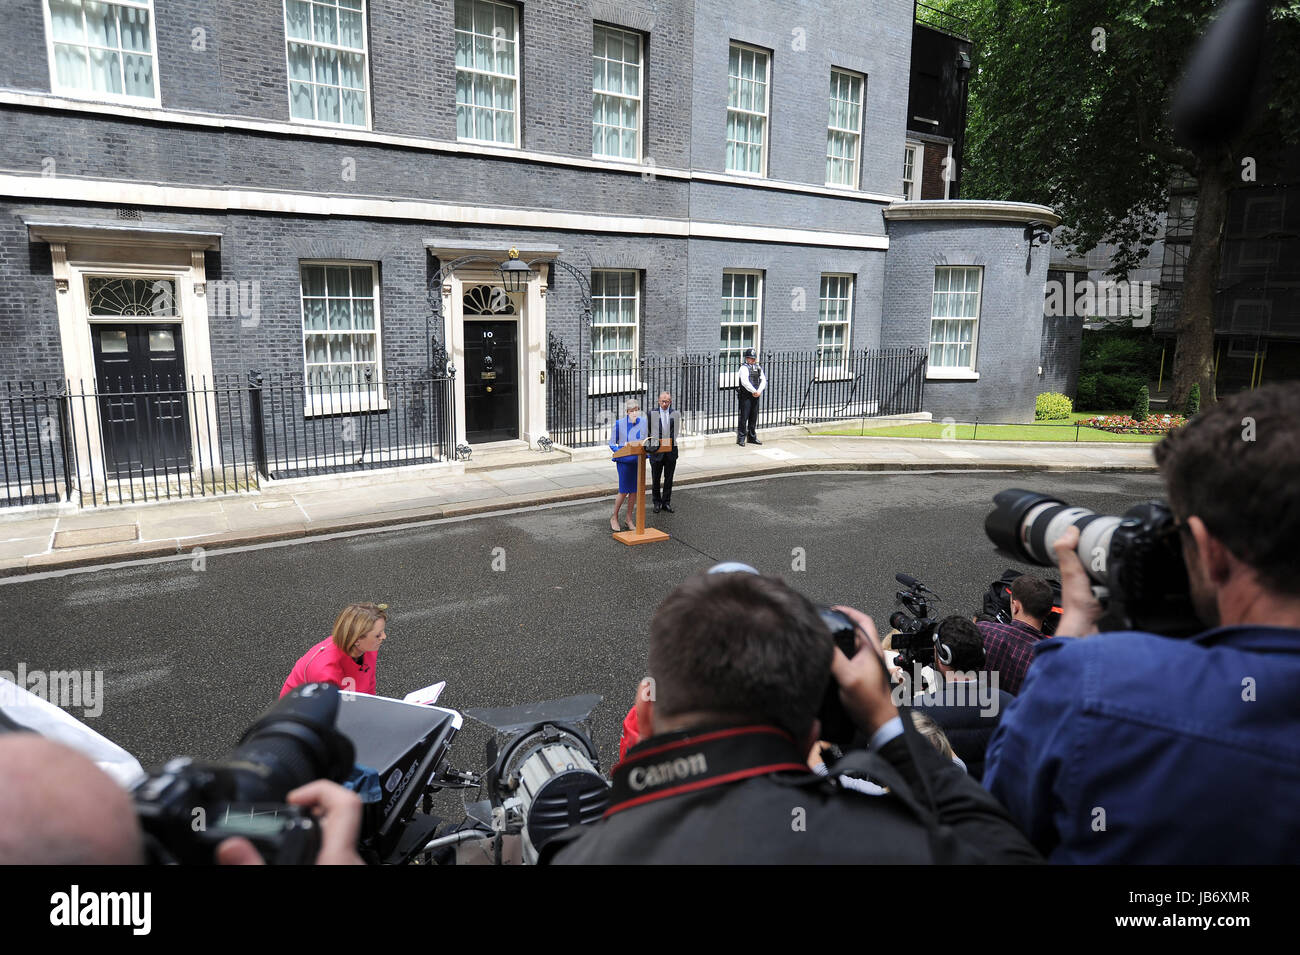 Prime Minister Theresa May in Downing Street - Stock Image